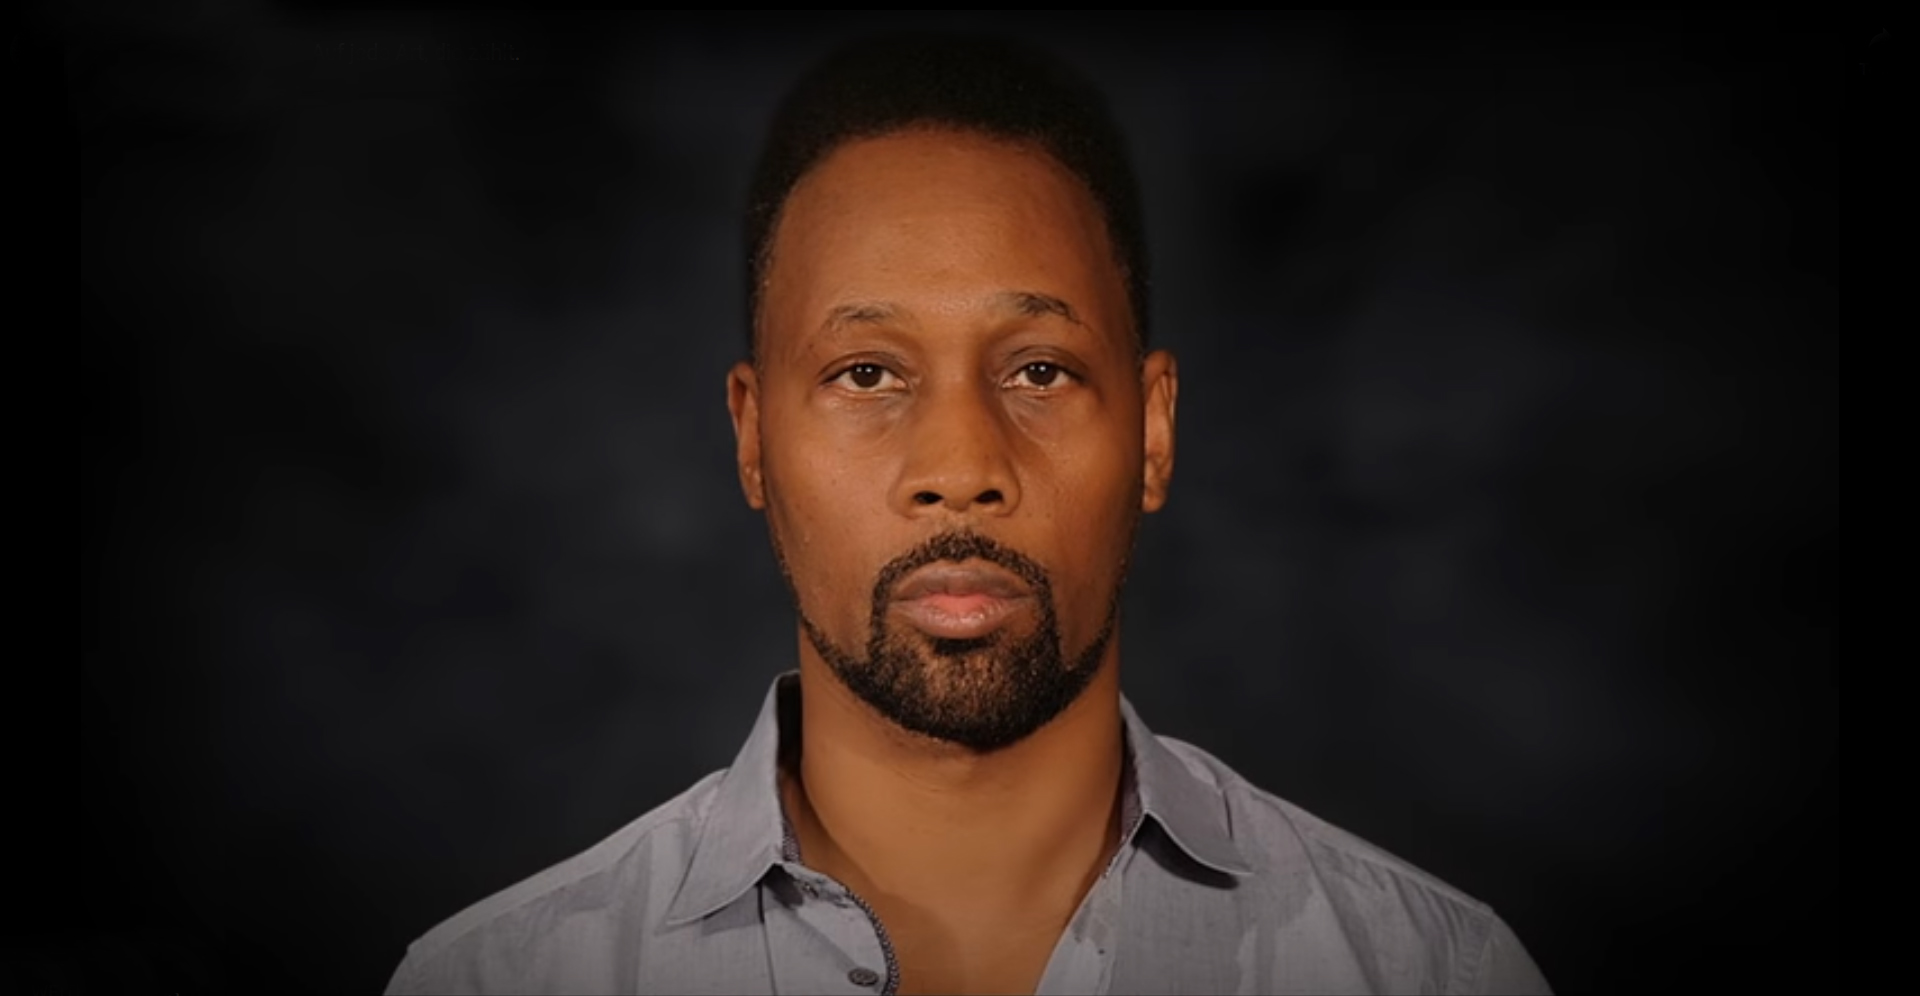 RZA vegan Tierrechte PETA Video